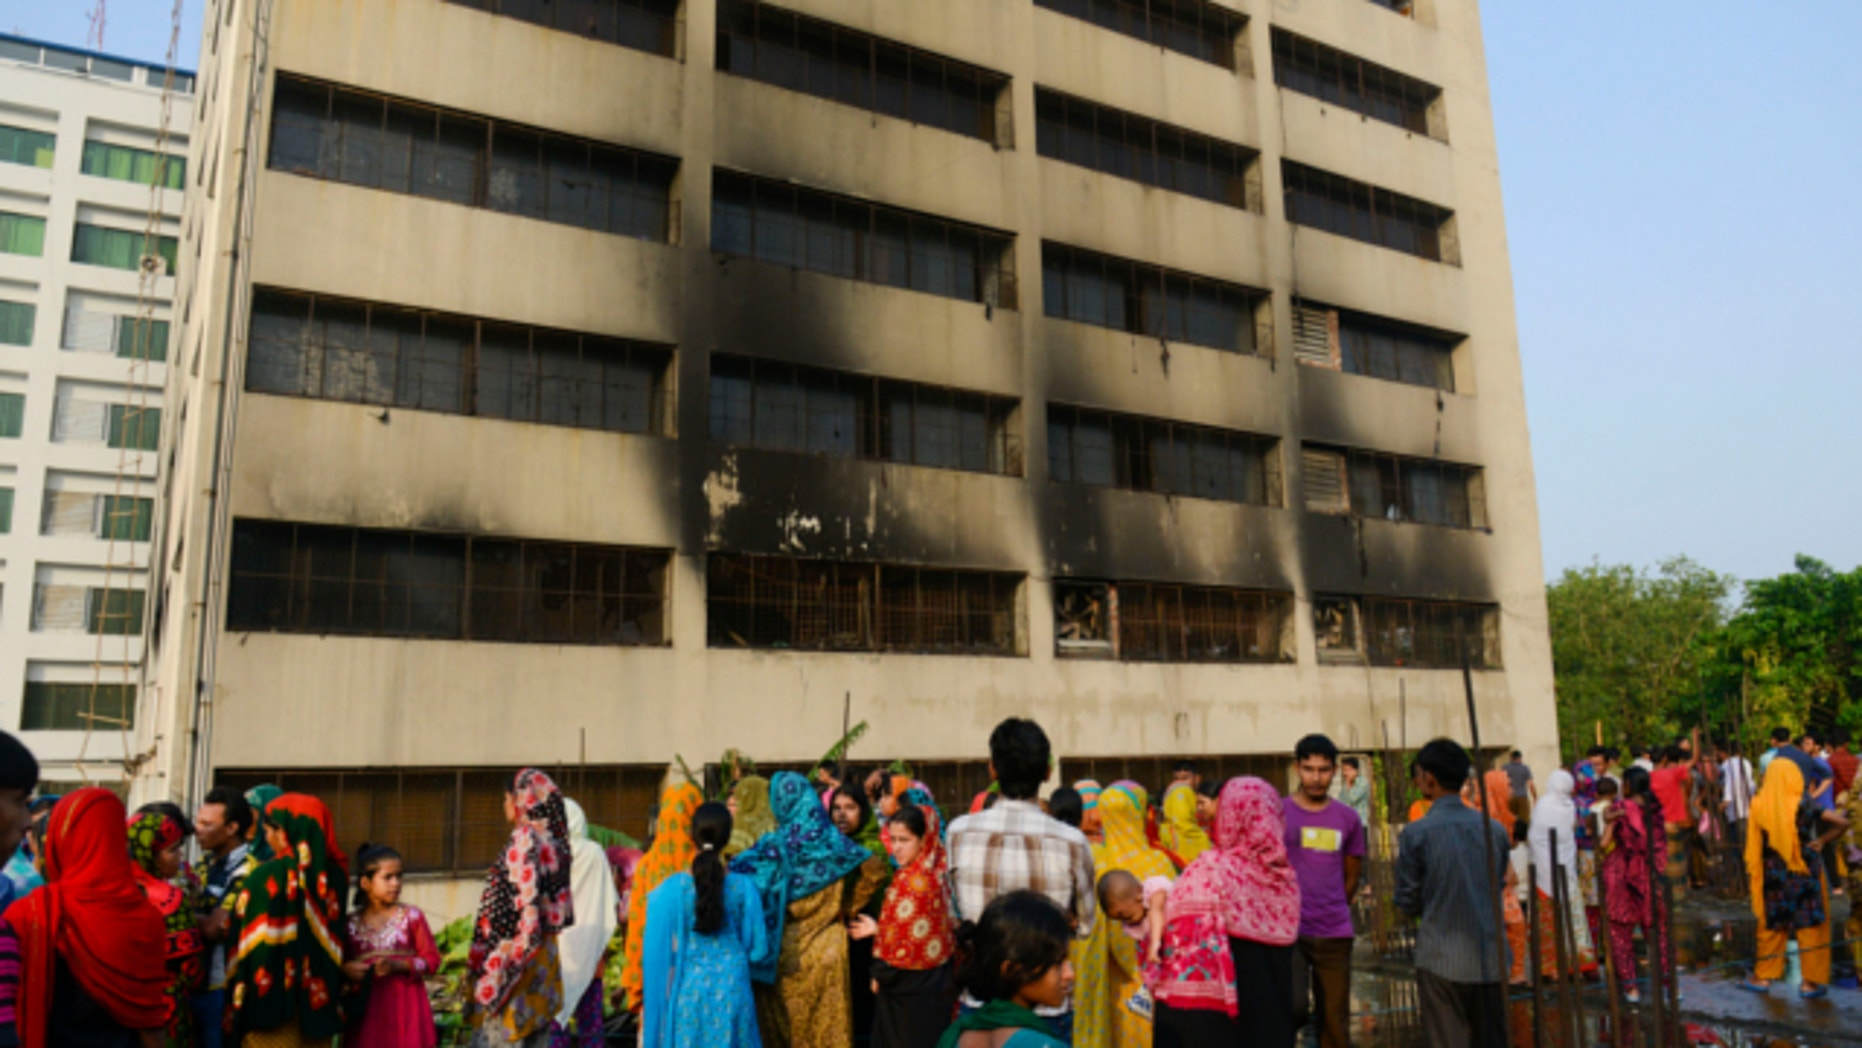 May 9, 2013: Workers stand outside an 11-story building that houses the Tung Hai Sweater Ltd. factory and apartments after a fire in Dhaka, Bangladesh.